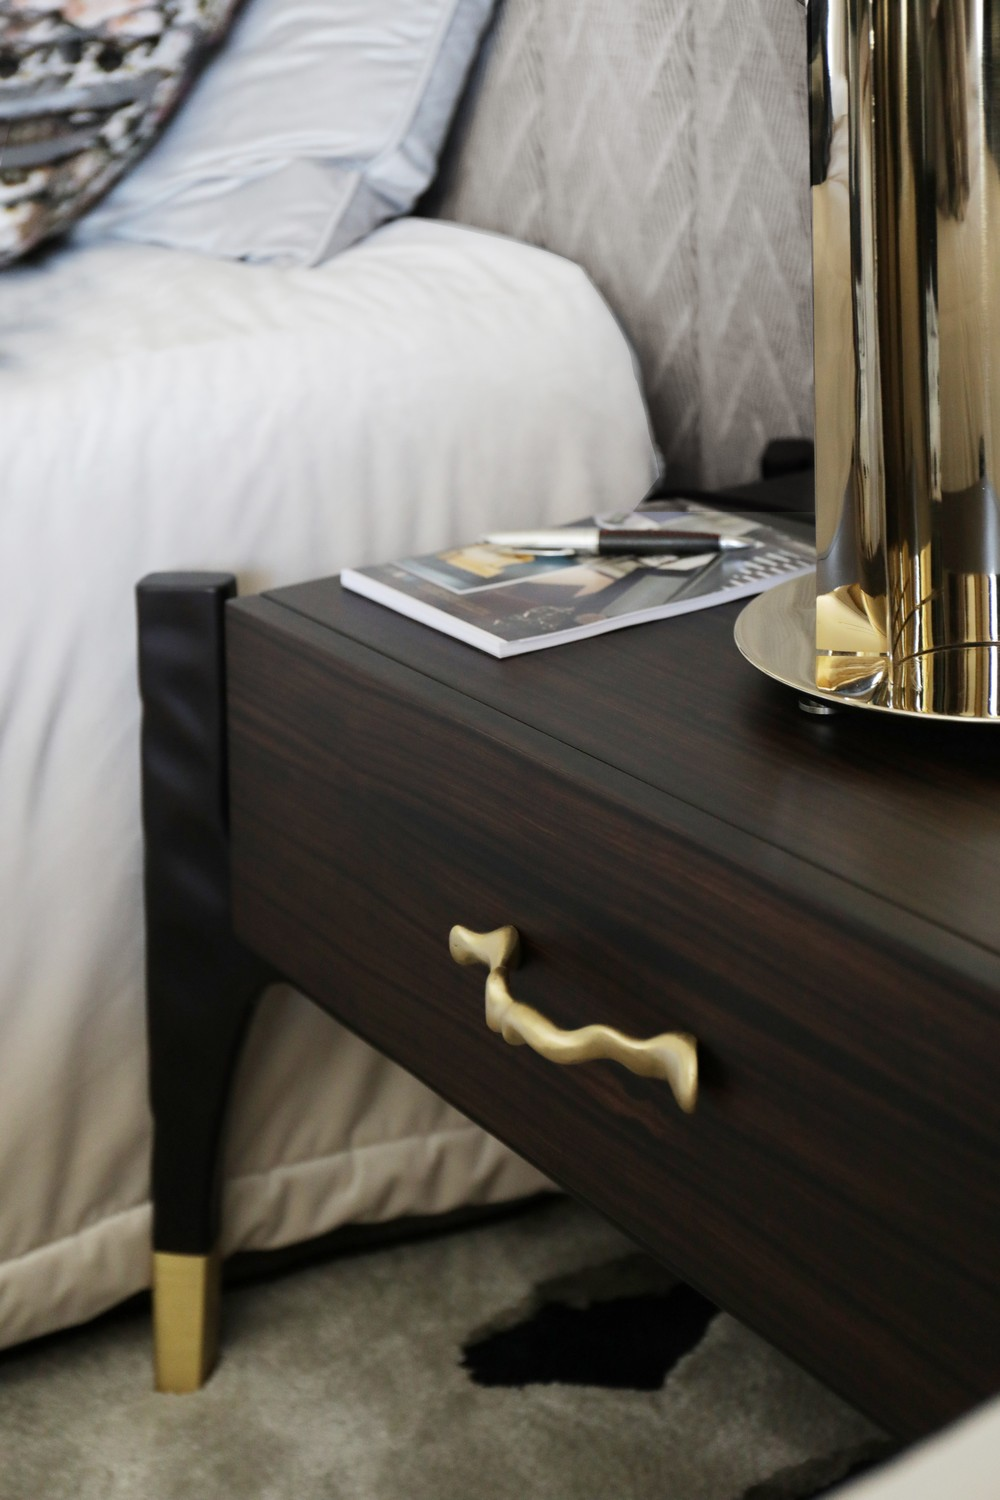 Luxury Nightstands How Highly Curated Drawer Handles Make a Change_6 luxury nightstands Luxury Nightstands: How Highly Curated Drawer Handles Make a Change Luxury Nightstands How Highly Curated Drawer Handles Make a Change 6